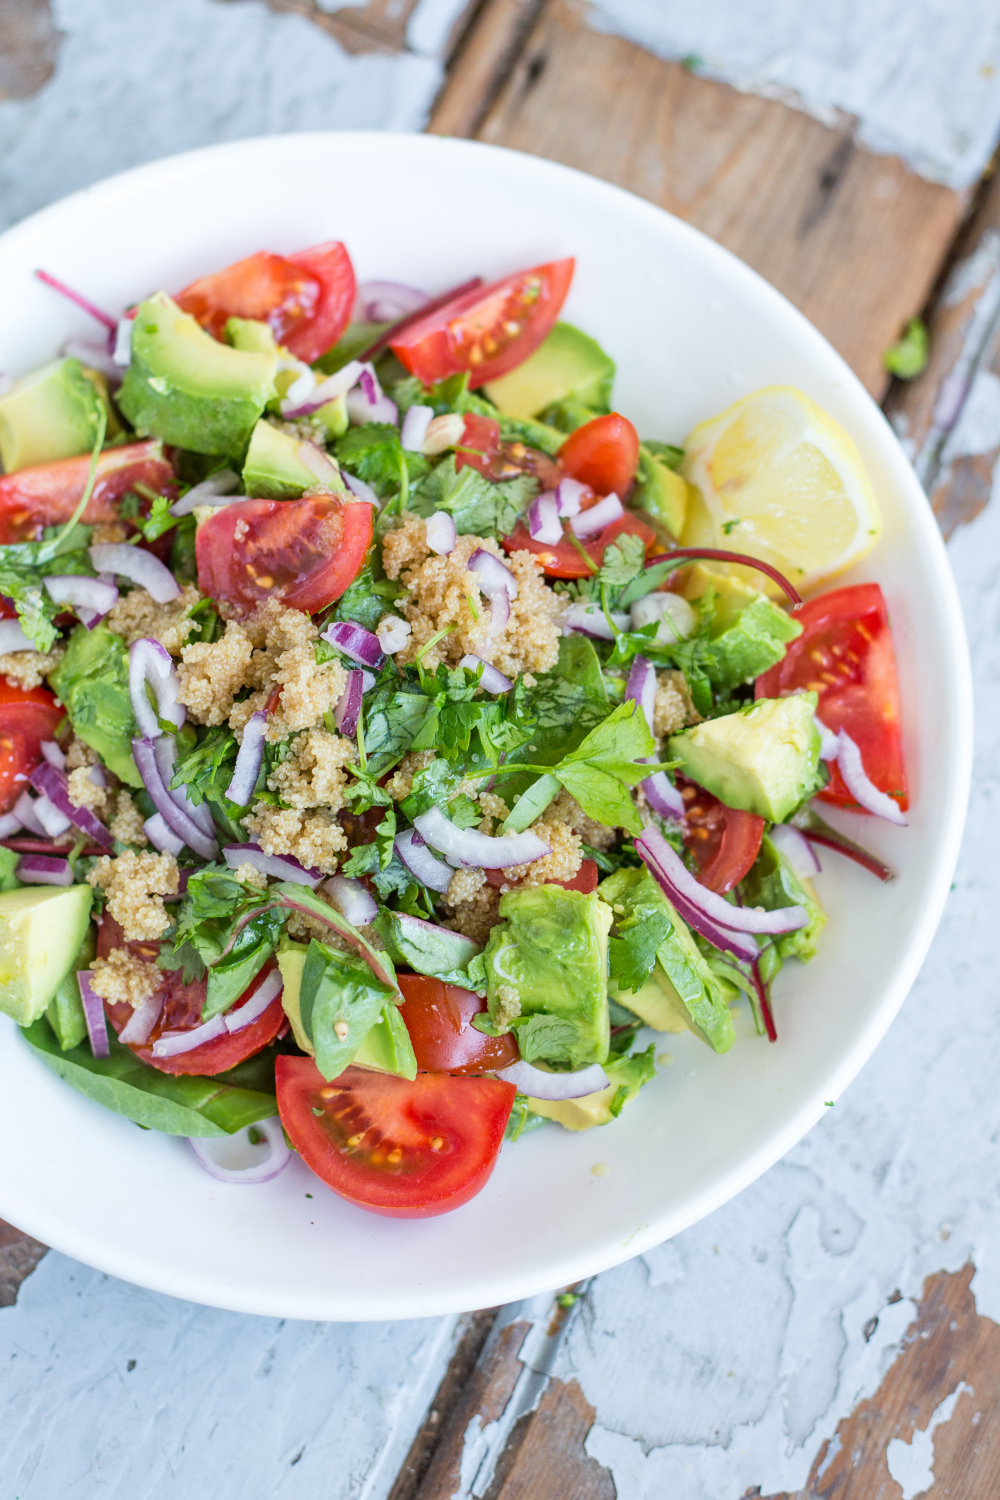 Vegan Amaranth Salad with Swiss Chard and Avocado. Here are 25 delicious vegan salads that will fill you up andhave a healthy source of protein. Show your friends that not 'all vegans eat is rabbit food' with these unique and delicious twists on salads #vegan